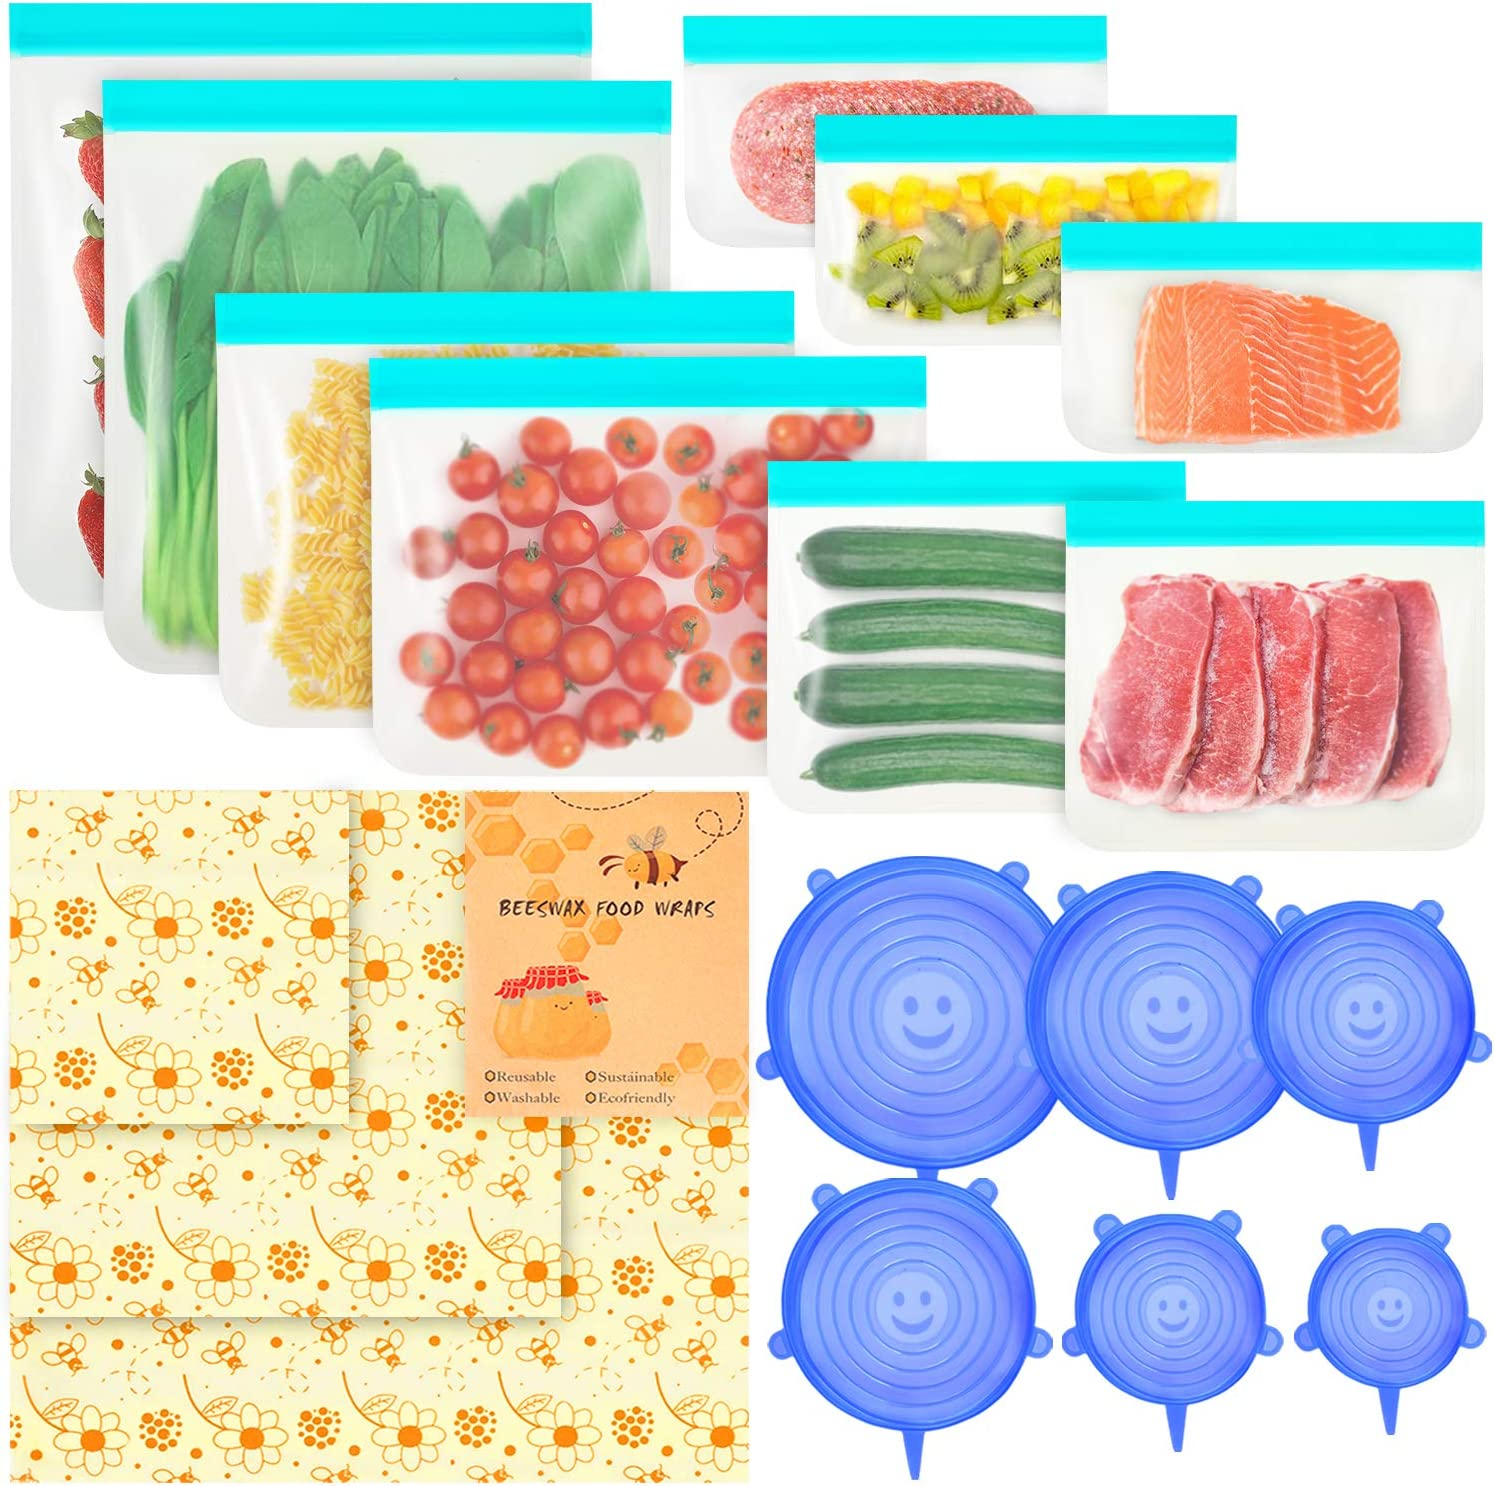 18 Pcs-Beeswax Wrap 3 Pcs & BPA FREE Reusable Food Wrap 9 Pcs & Silicone Stretch Lid 6 Pcs,Eco-Friendly Freezer Preservation Bags for Vegetable,Fruit,Snack,Lunch,Cereals.